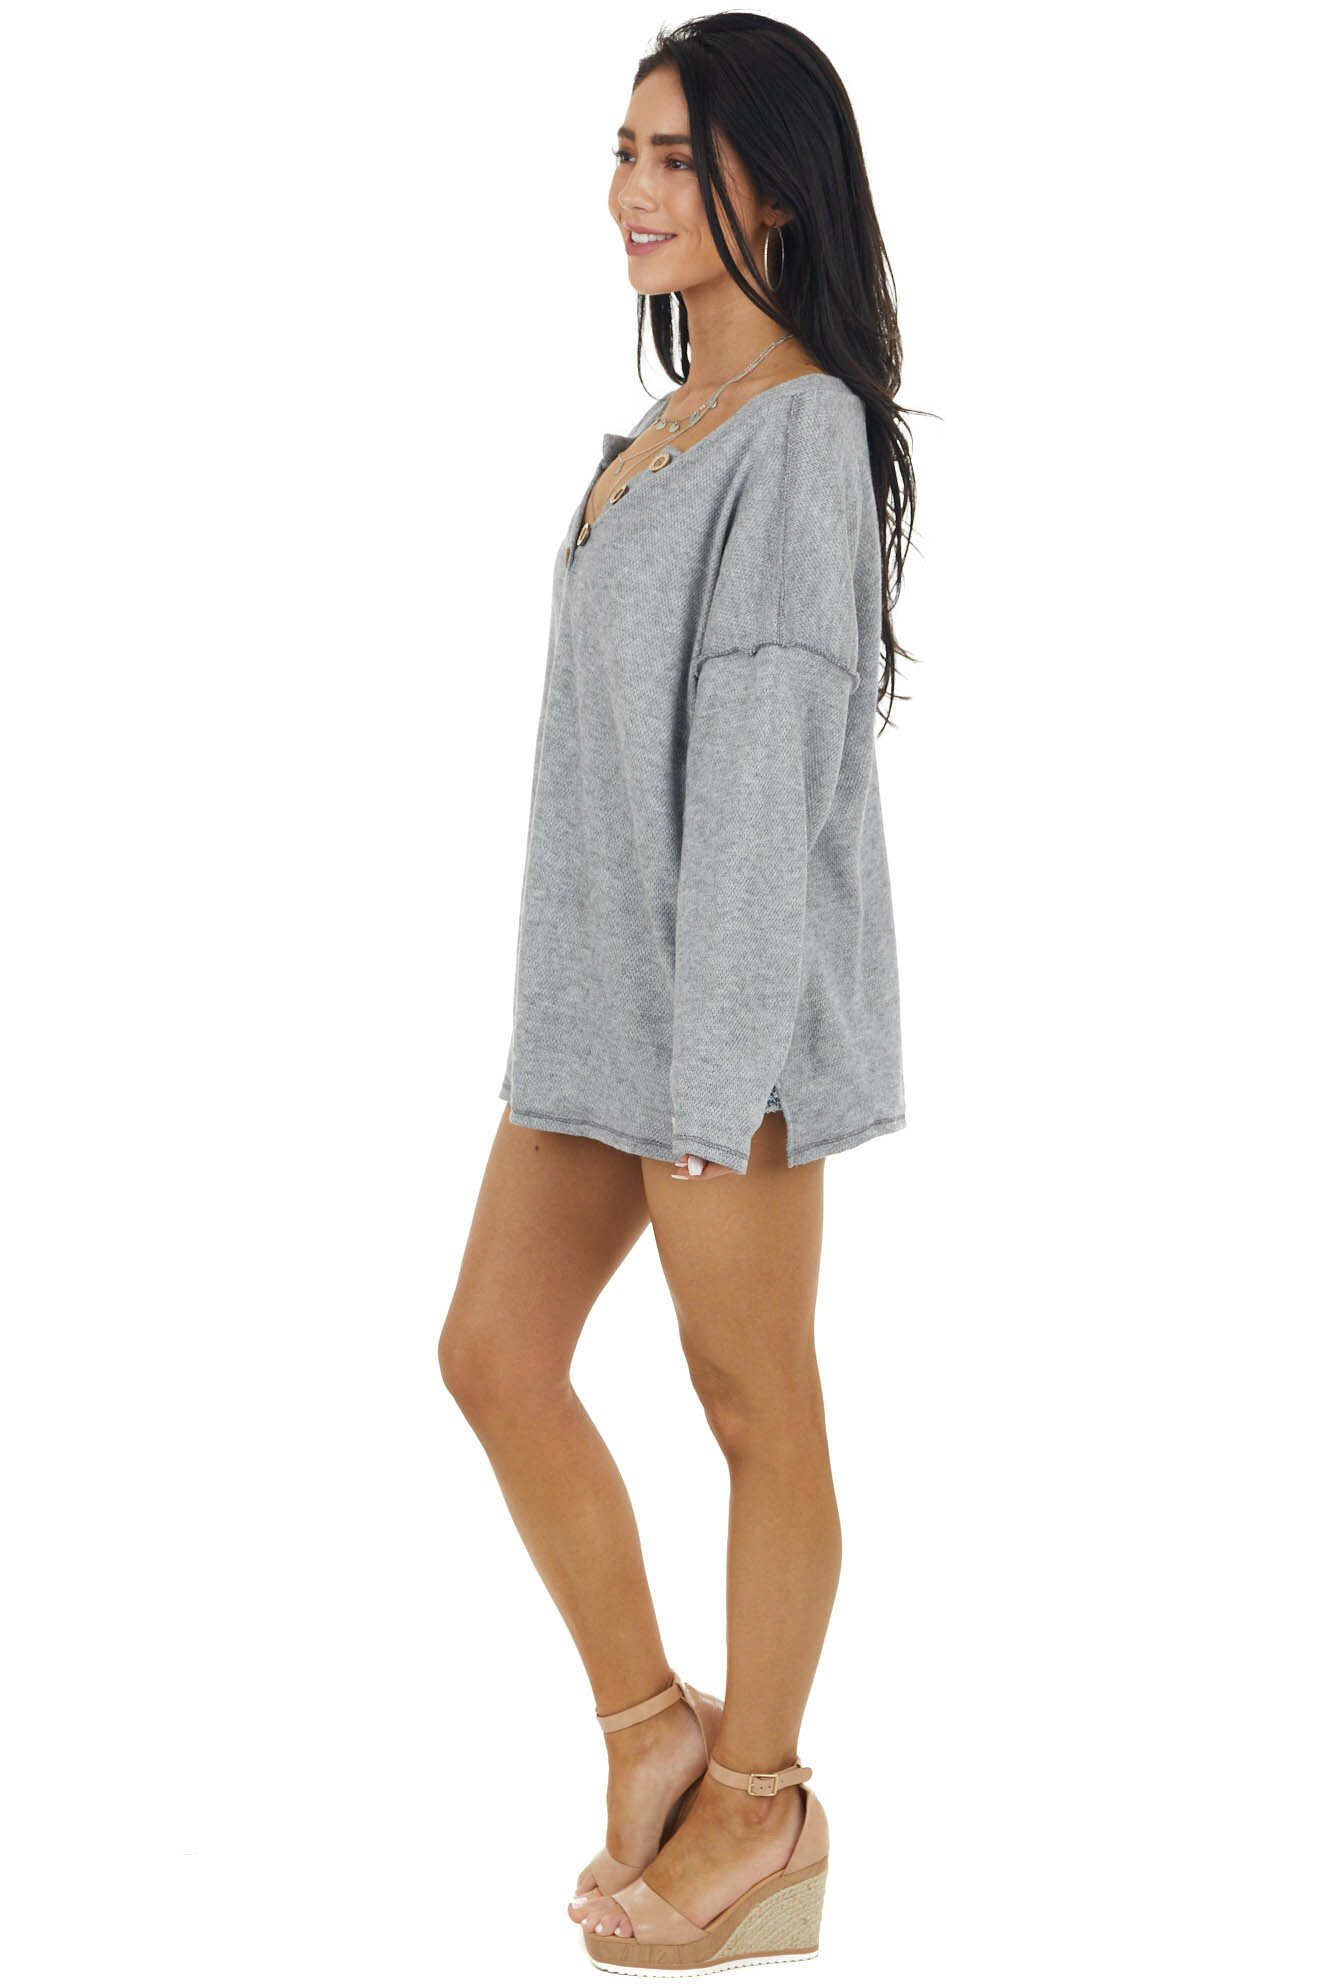 Vintage Stone Grey Henley Top with Reversed Seam Details